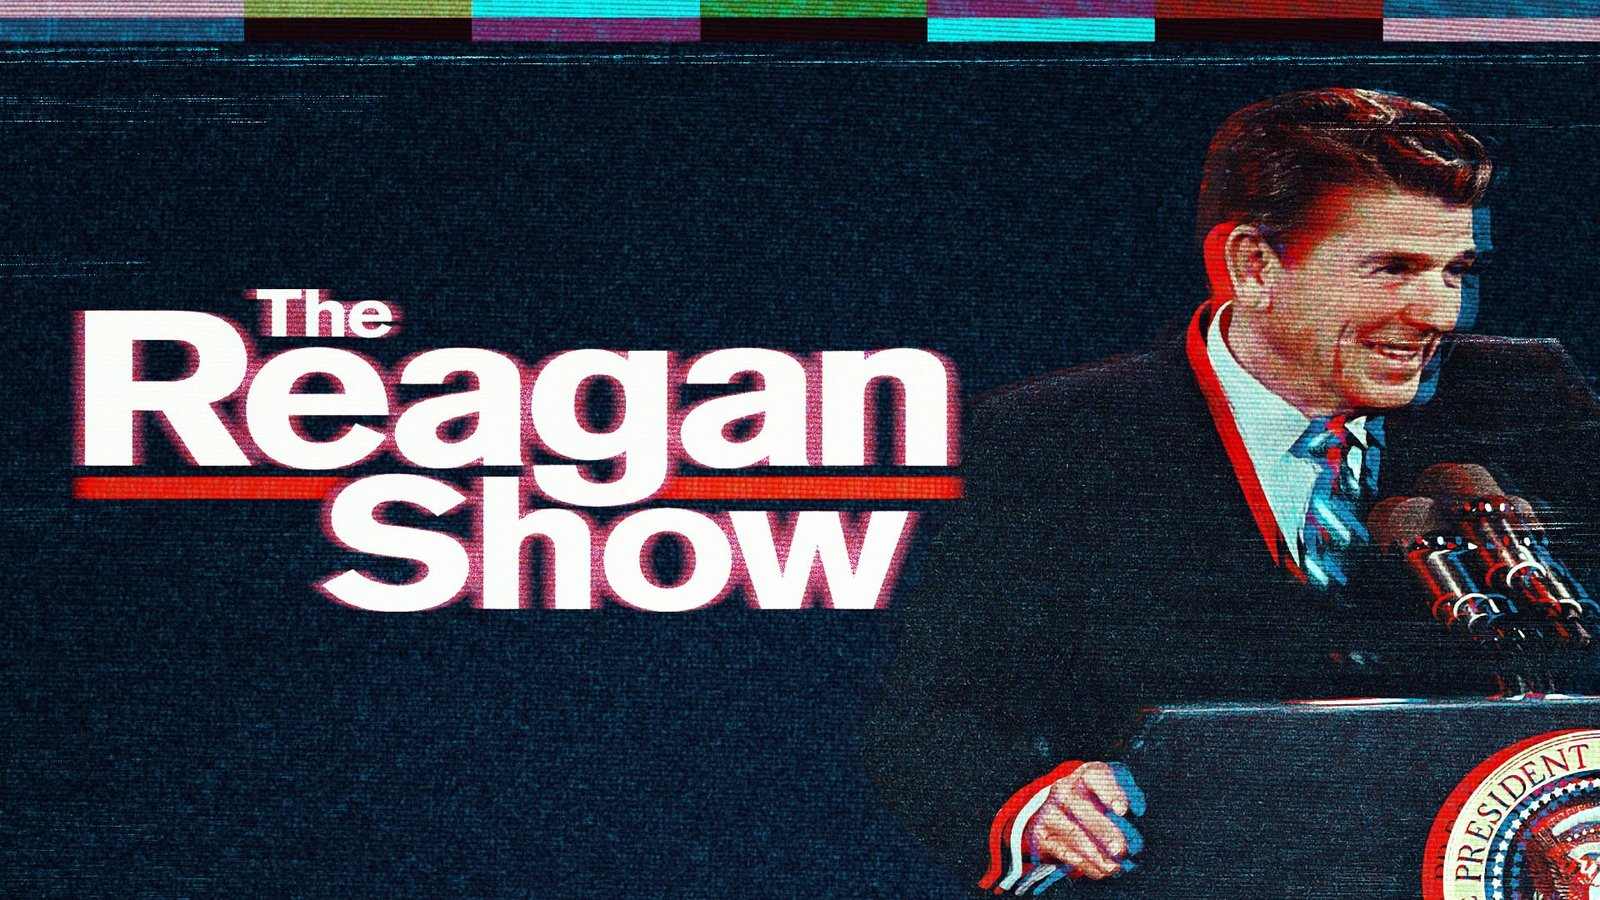 The Reagan Show - The Made-for-TV Politics of Ronald Reagan